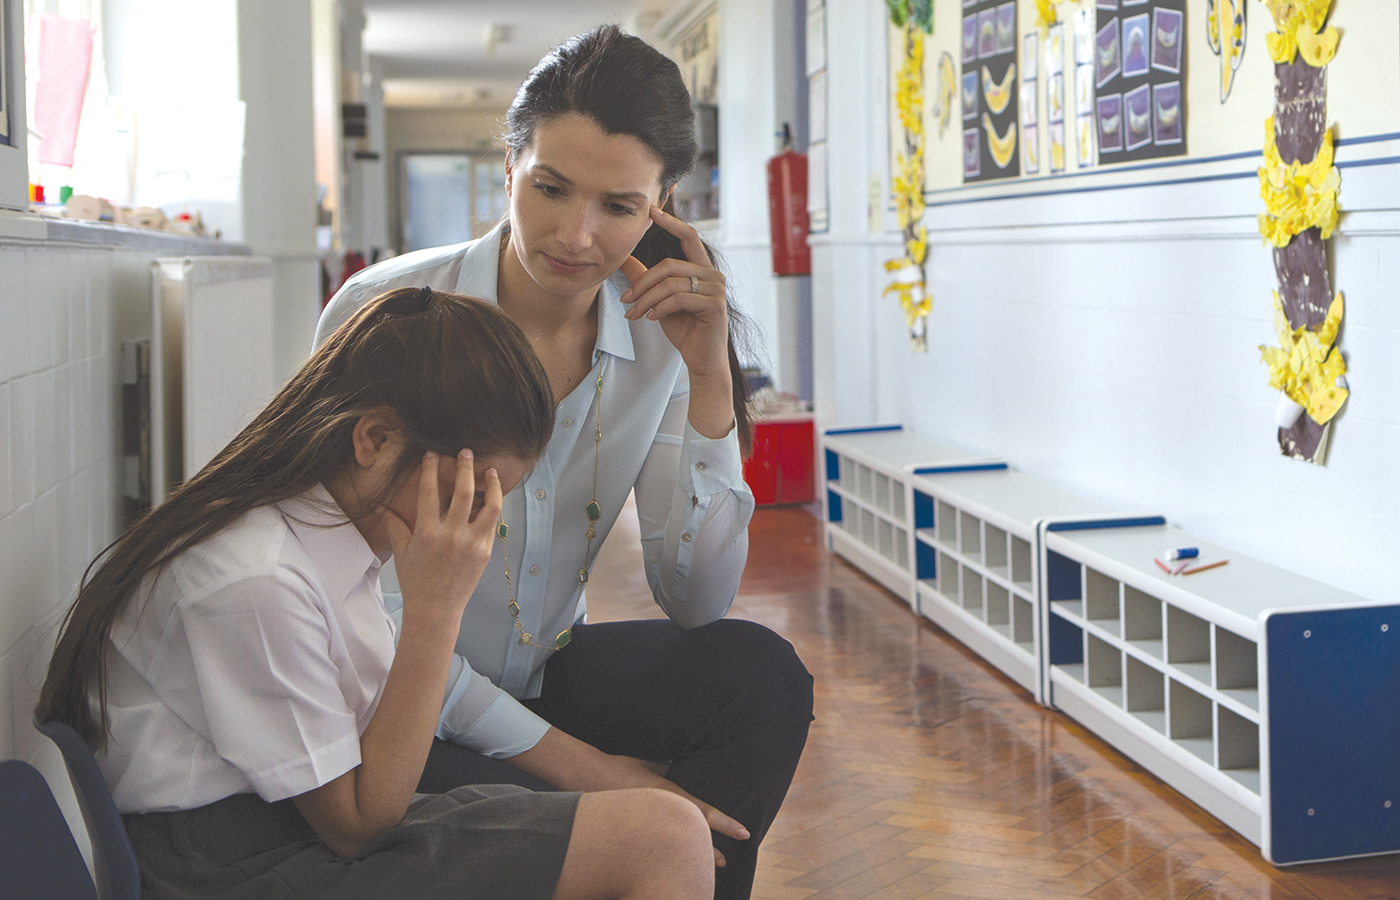 SPECIAL REPORT: Kids and Anxiety